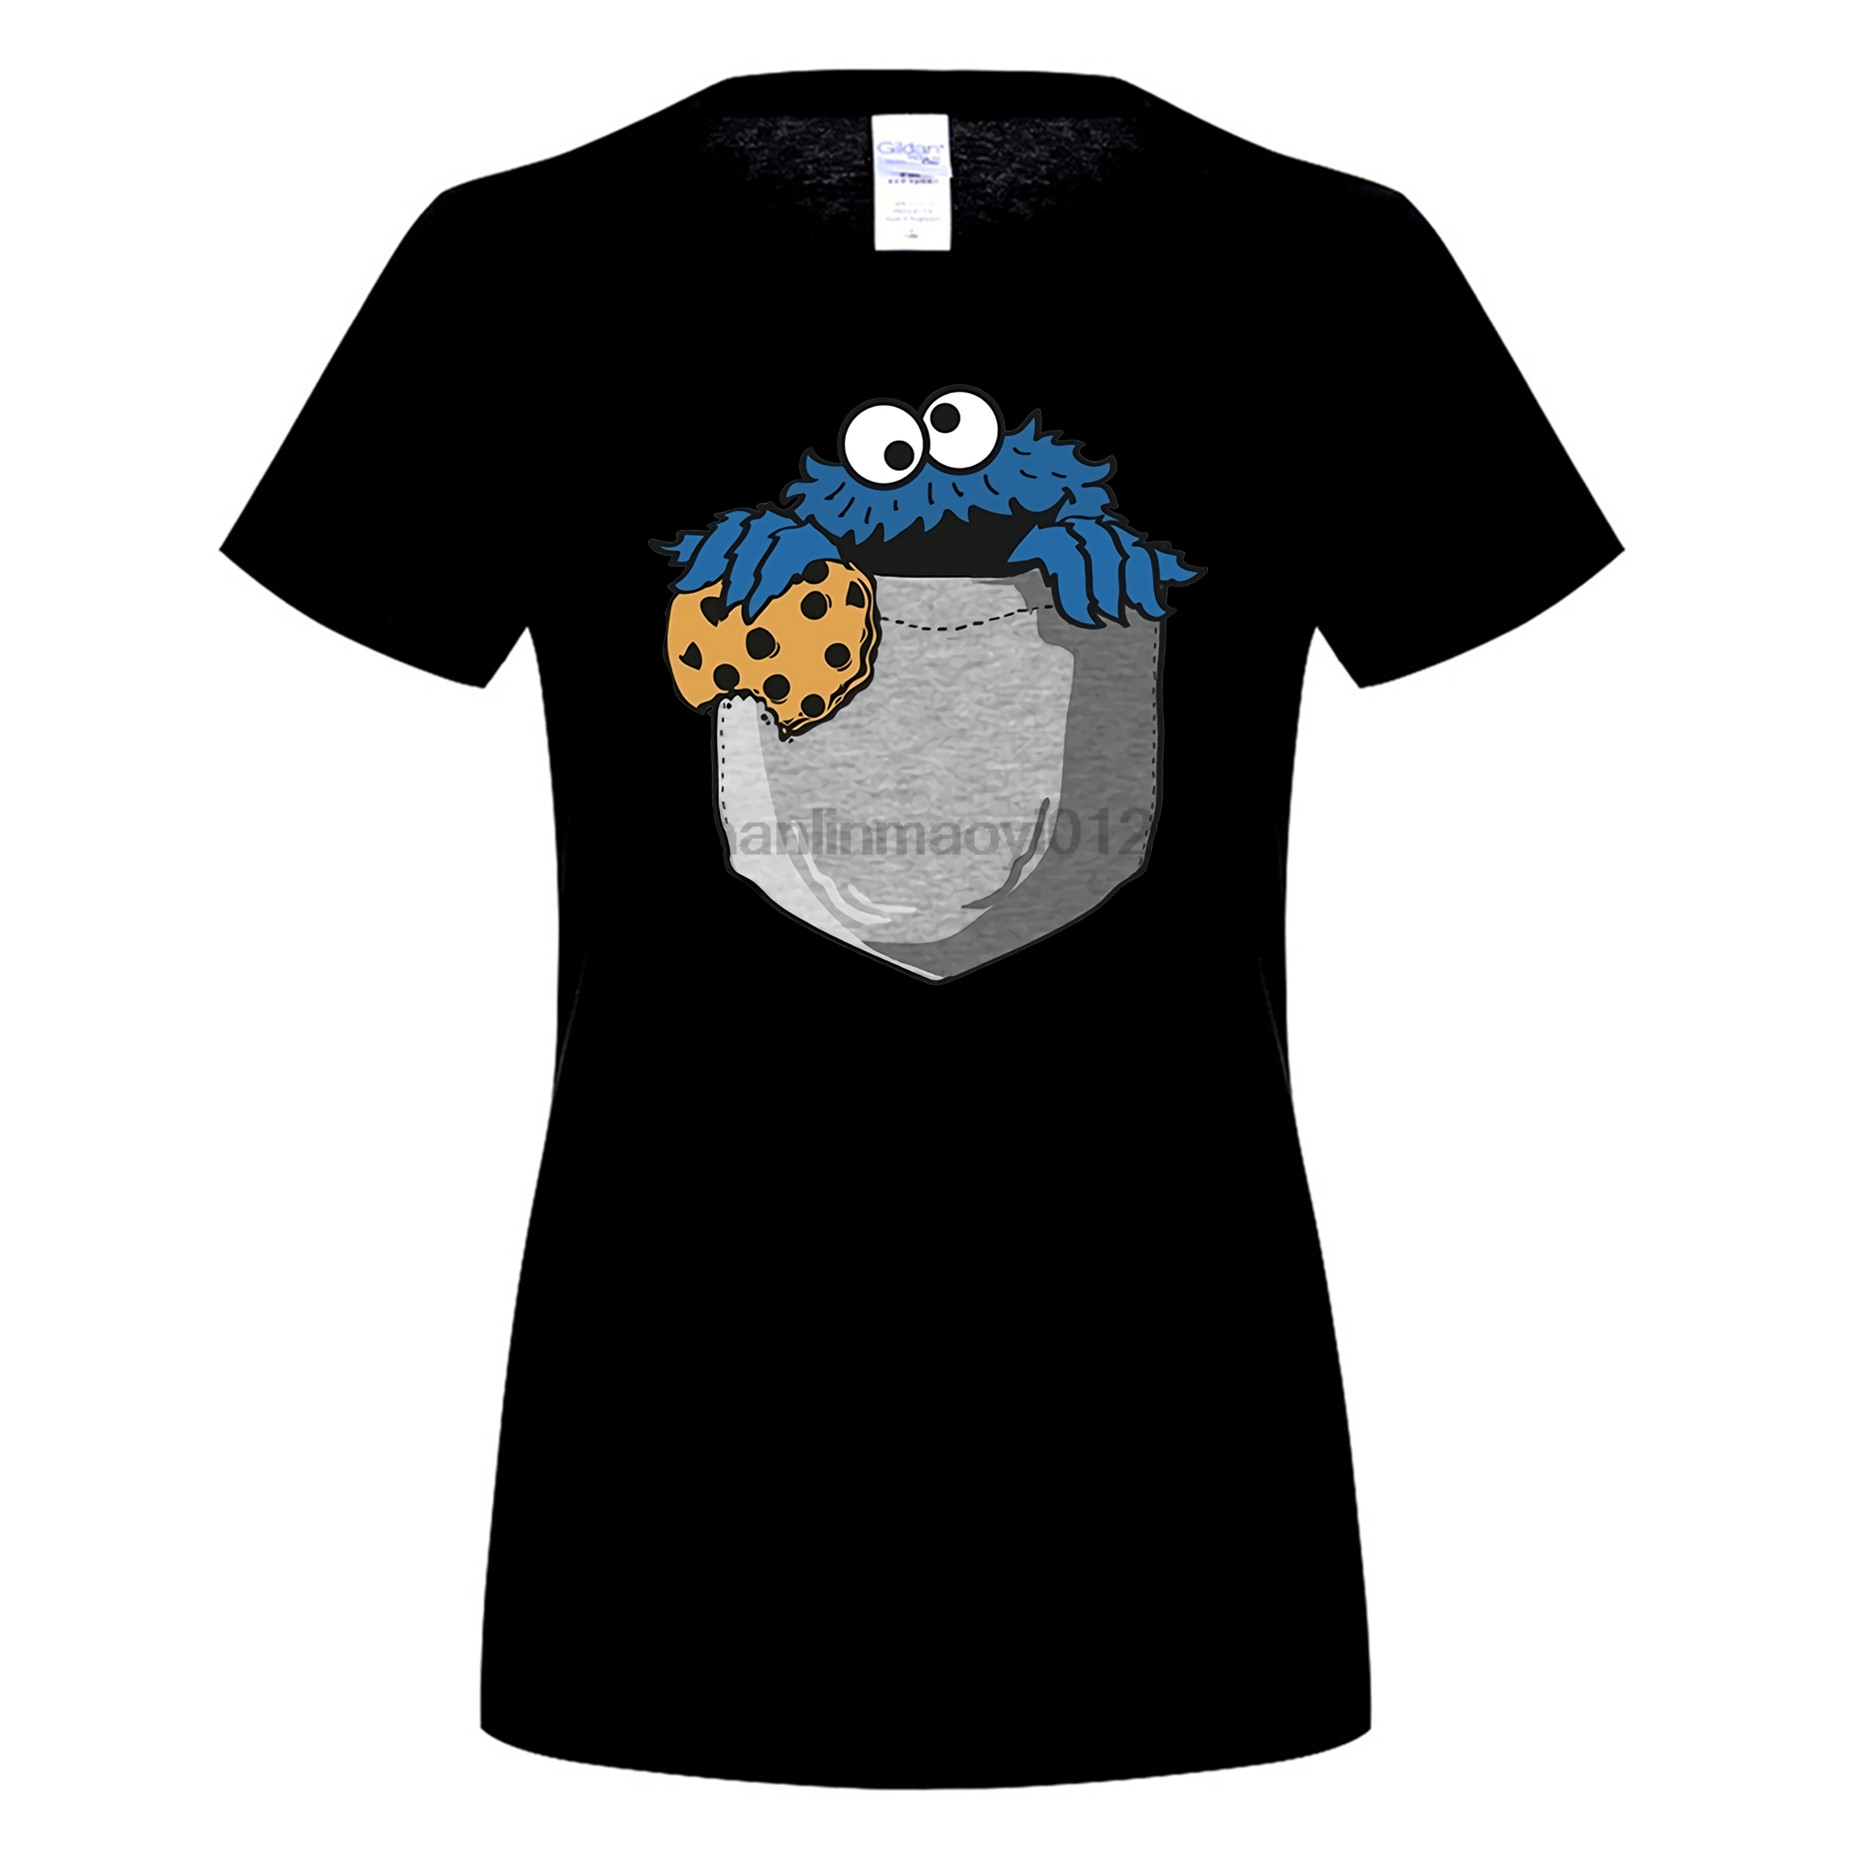 GILDAN Cookie Monster T Shirt For women Crumbs in My Pocket Homme O Neck Short Sleeve Tshirs Cheap Sale Adult T Shirt women